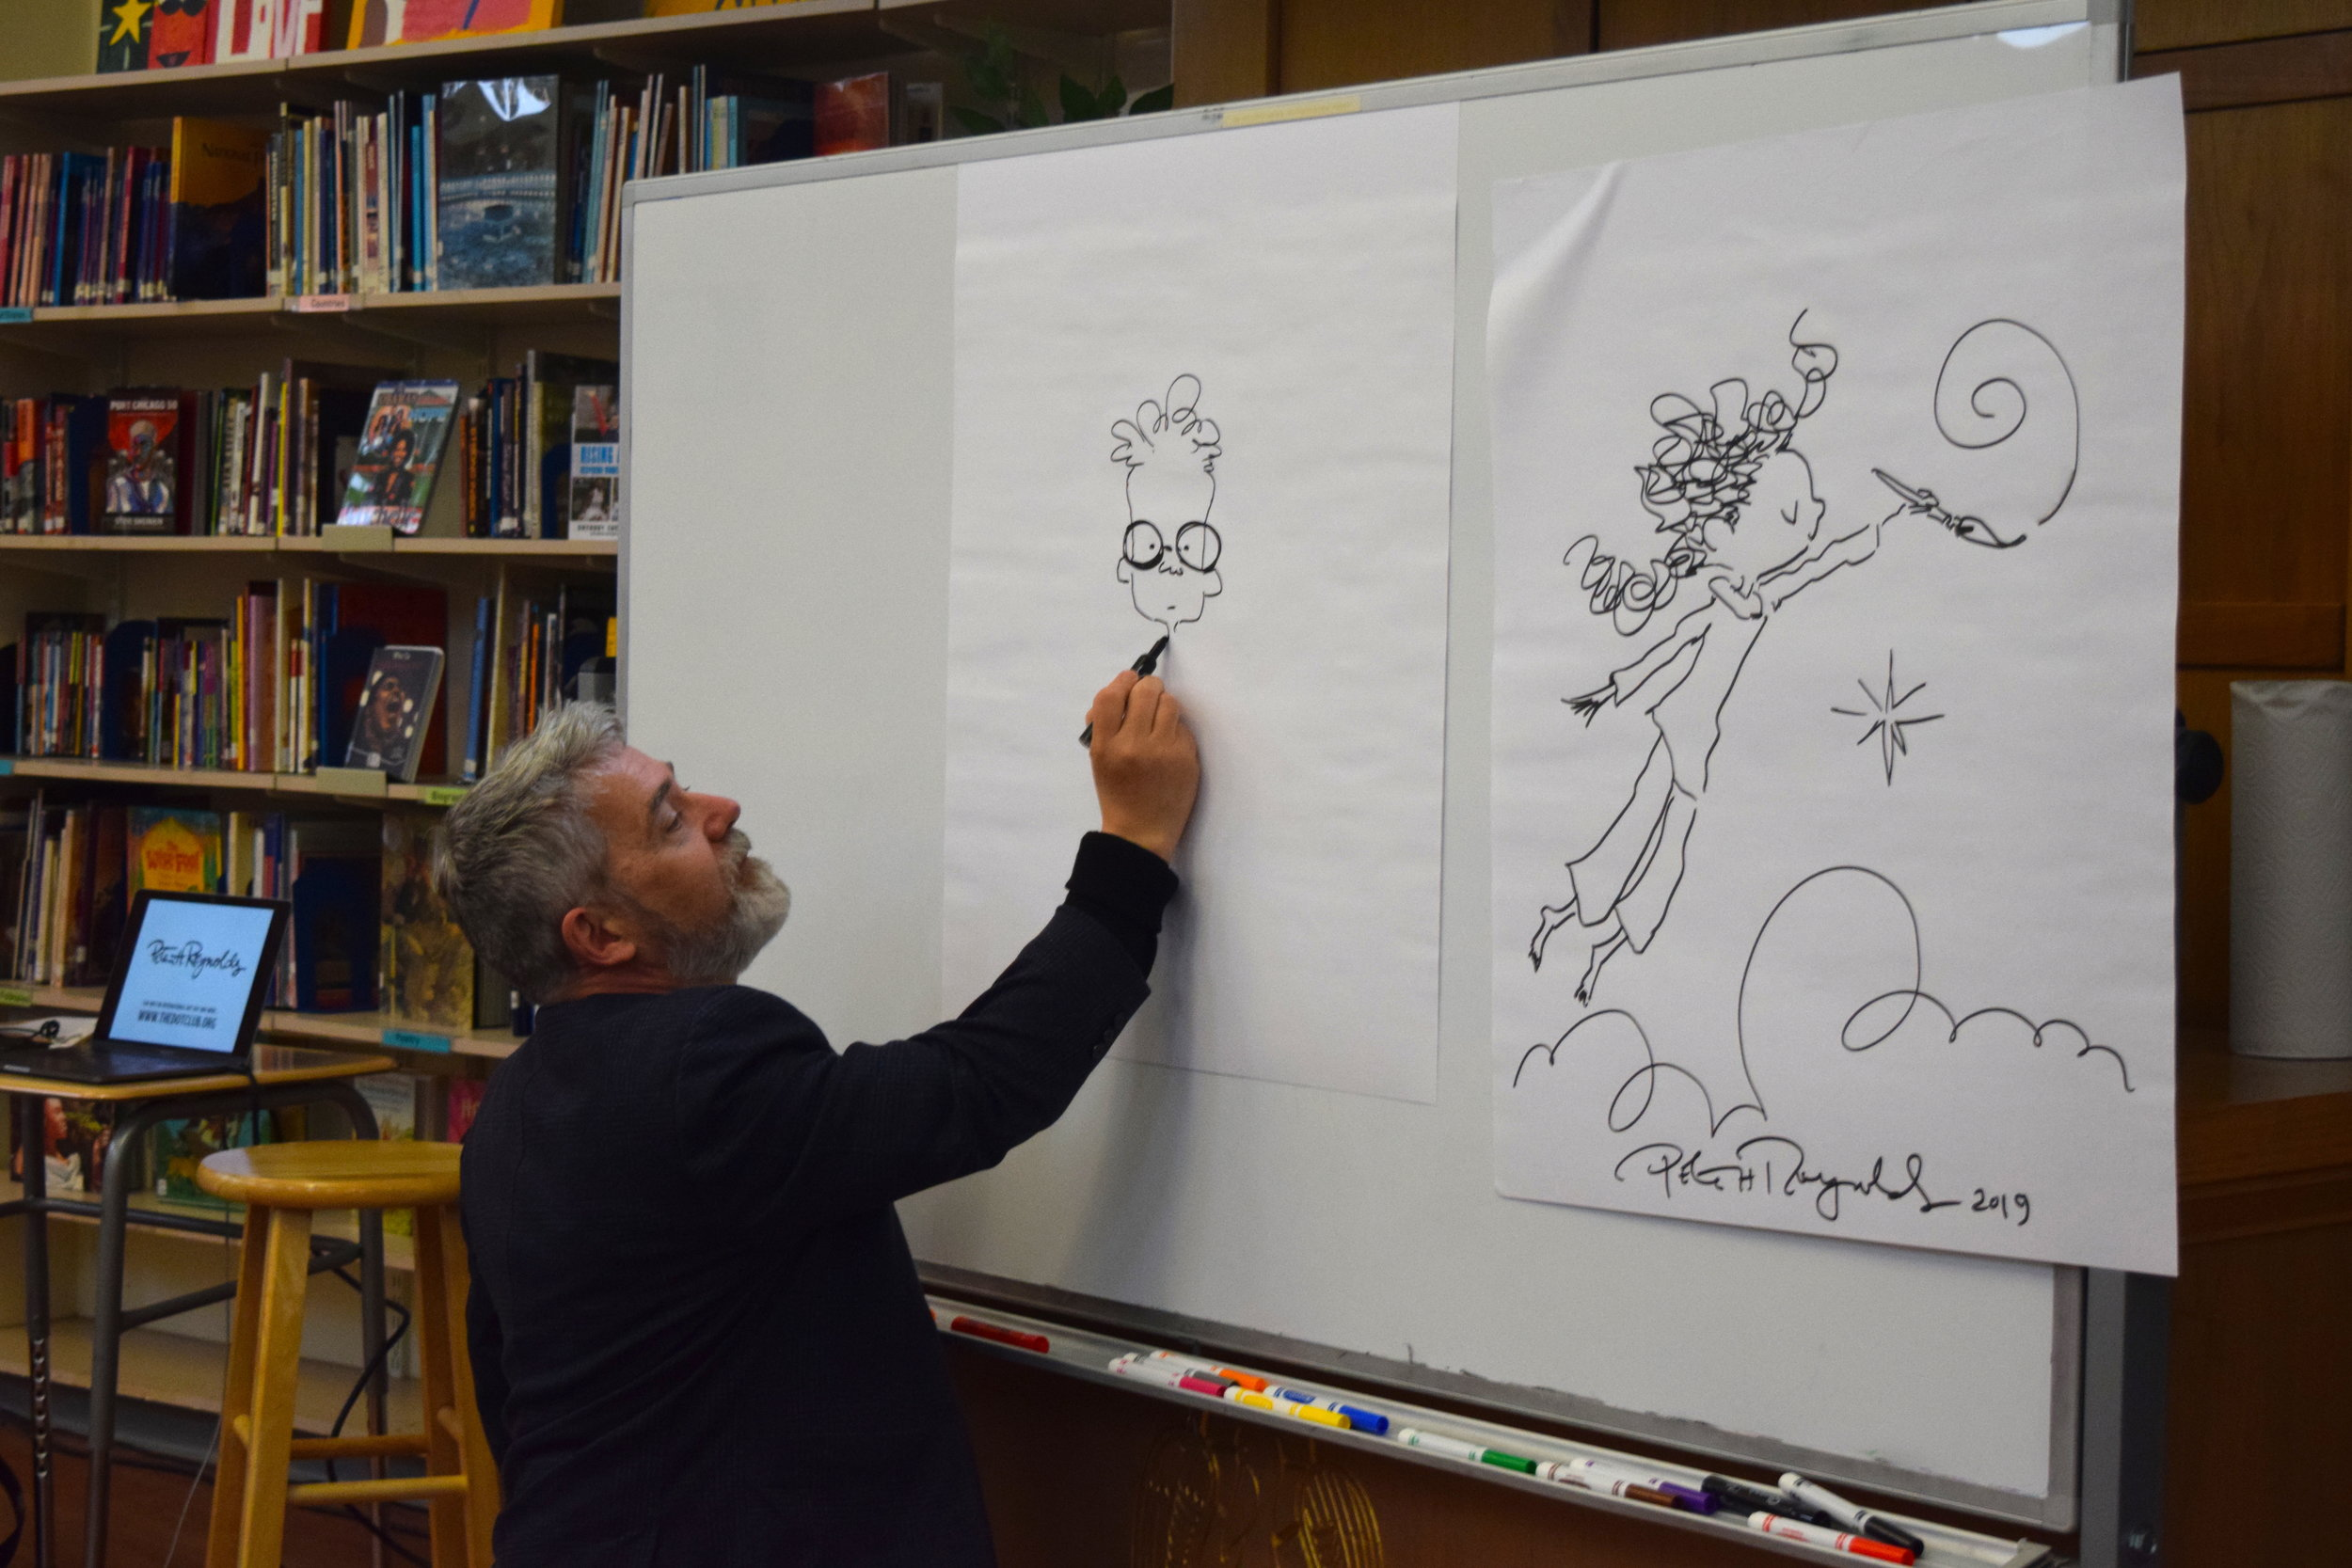 Peter Reynolds showing the kids how he lets his imagination take the lead